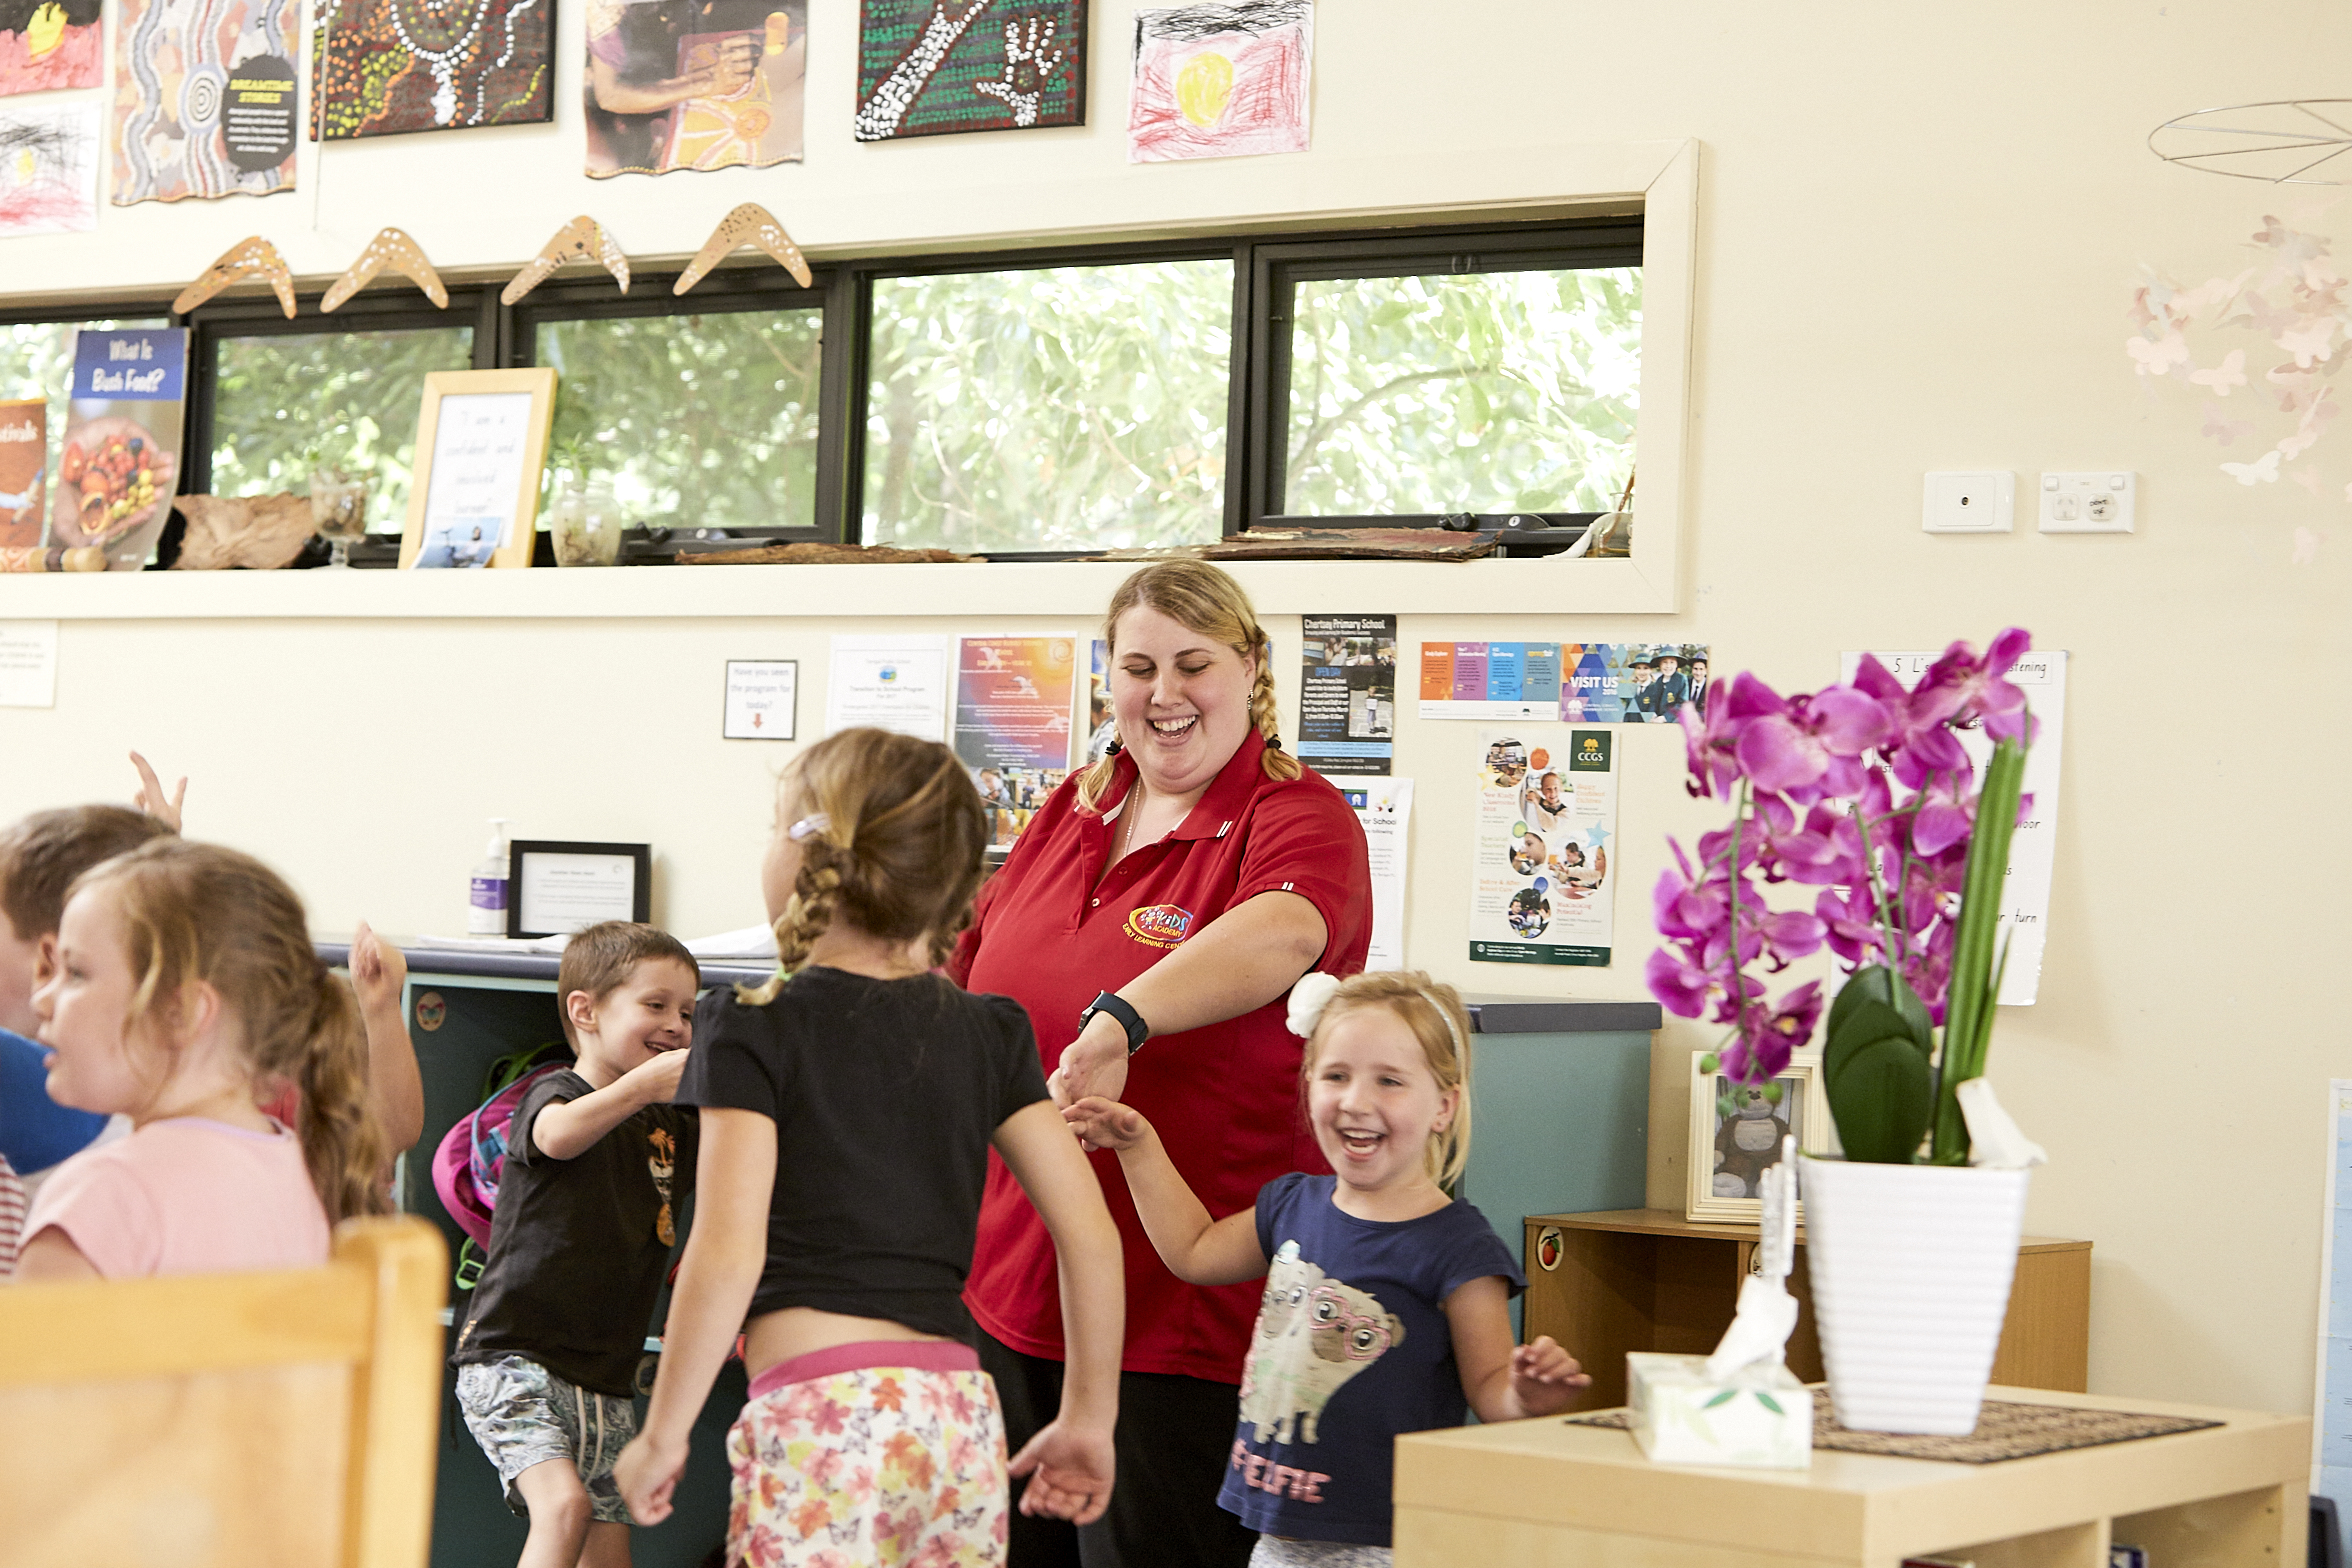 Child care educator dancing with group of children in classroom at Kids Academy Erina Heights